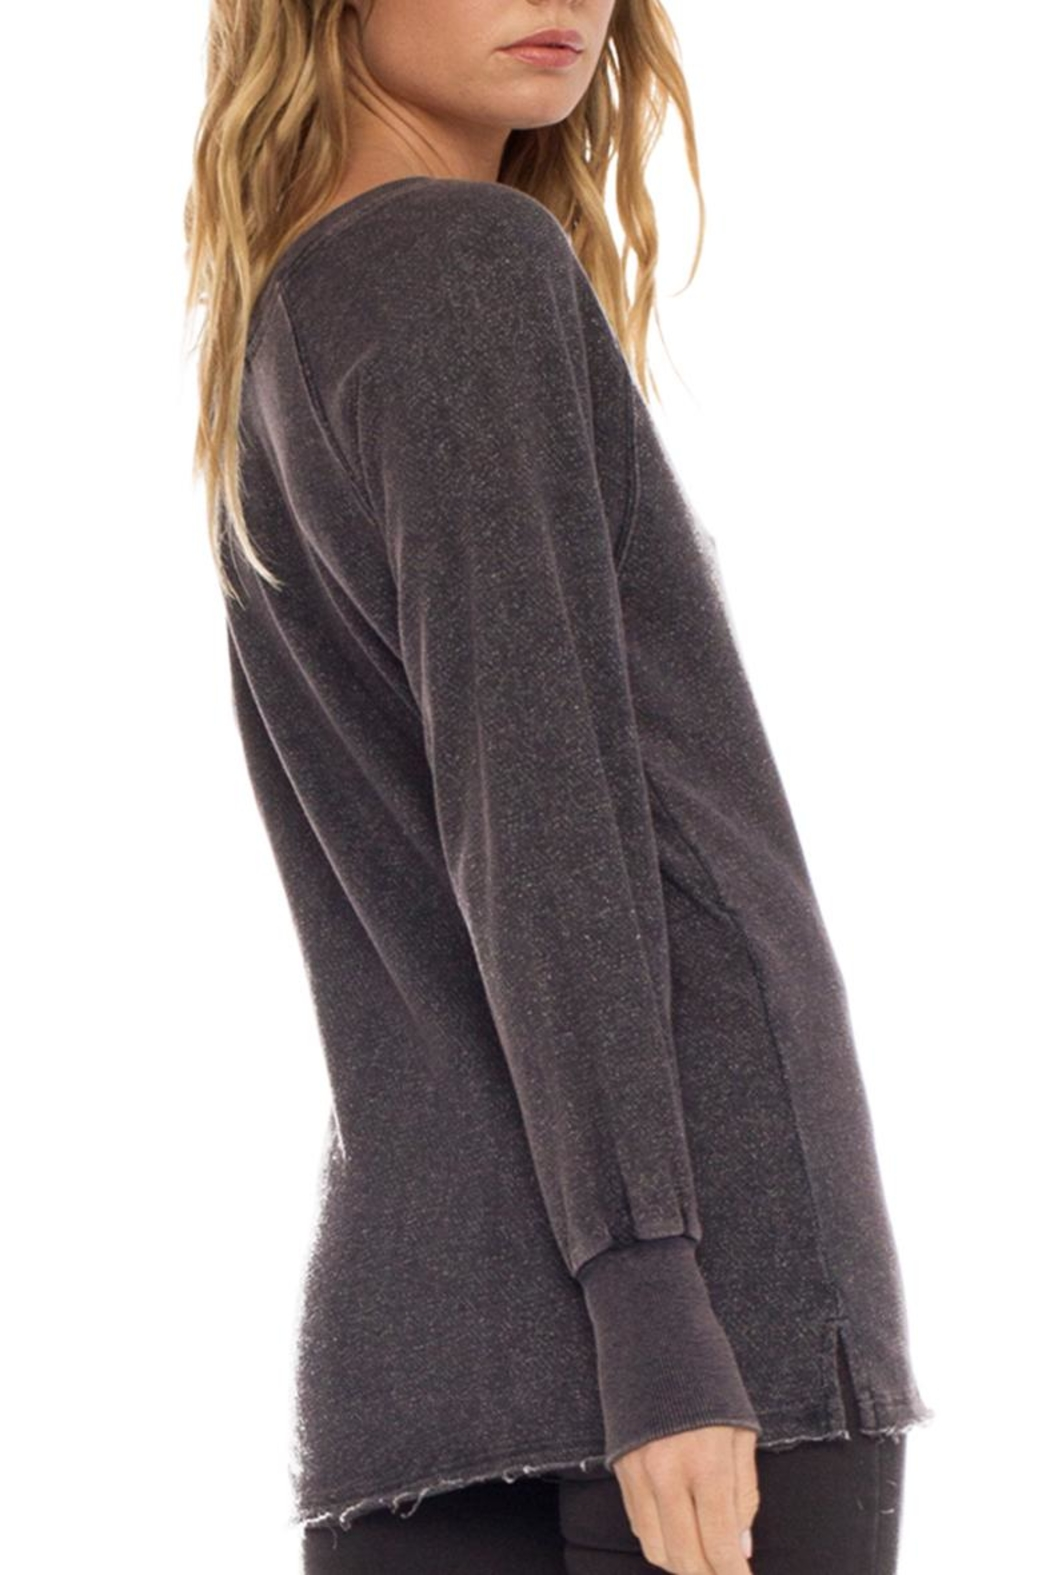 Anama Distressed Lace-Trim Sweater - Front Full Image